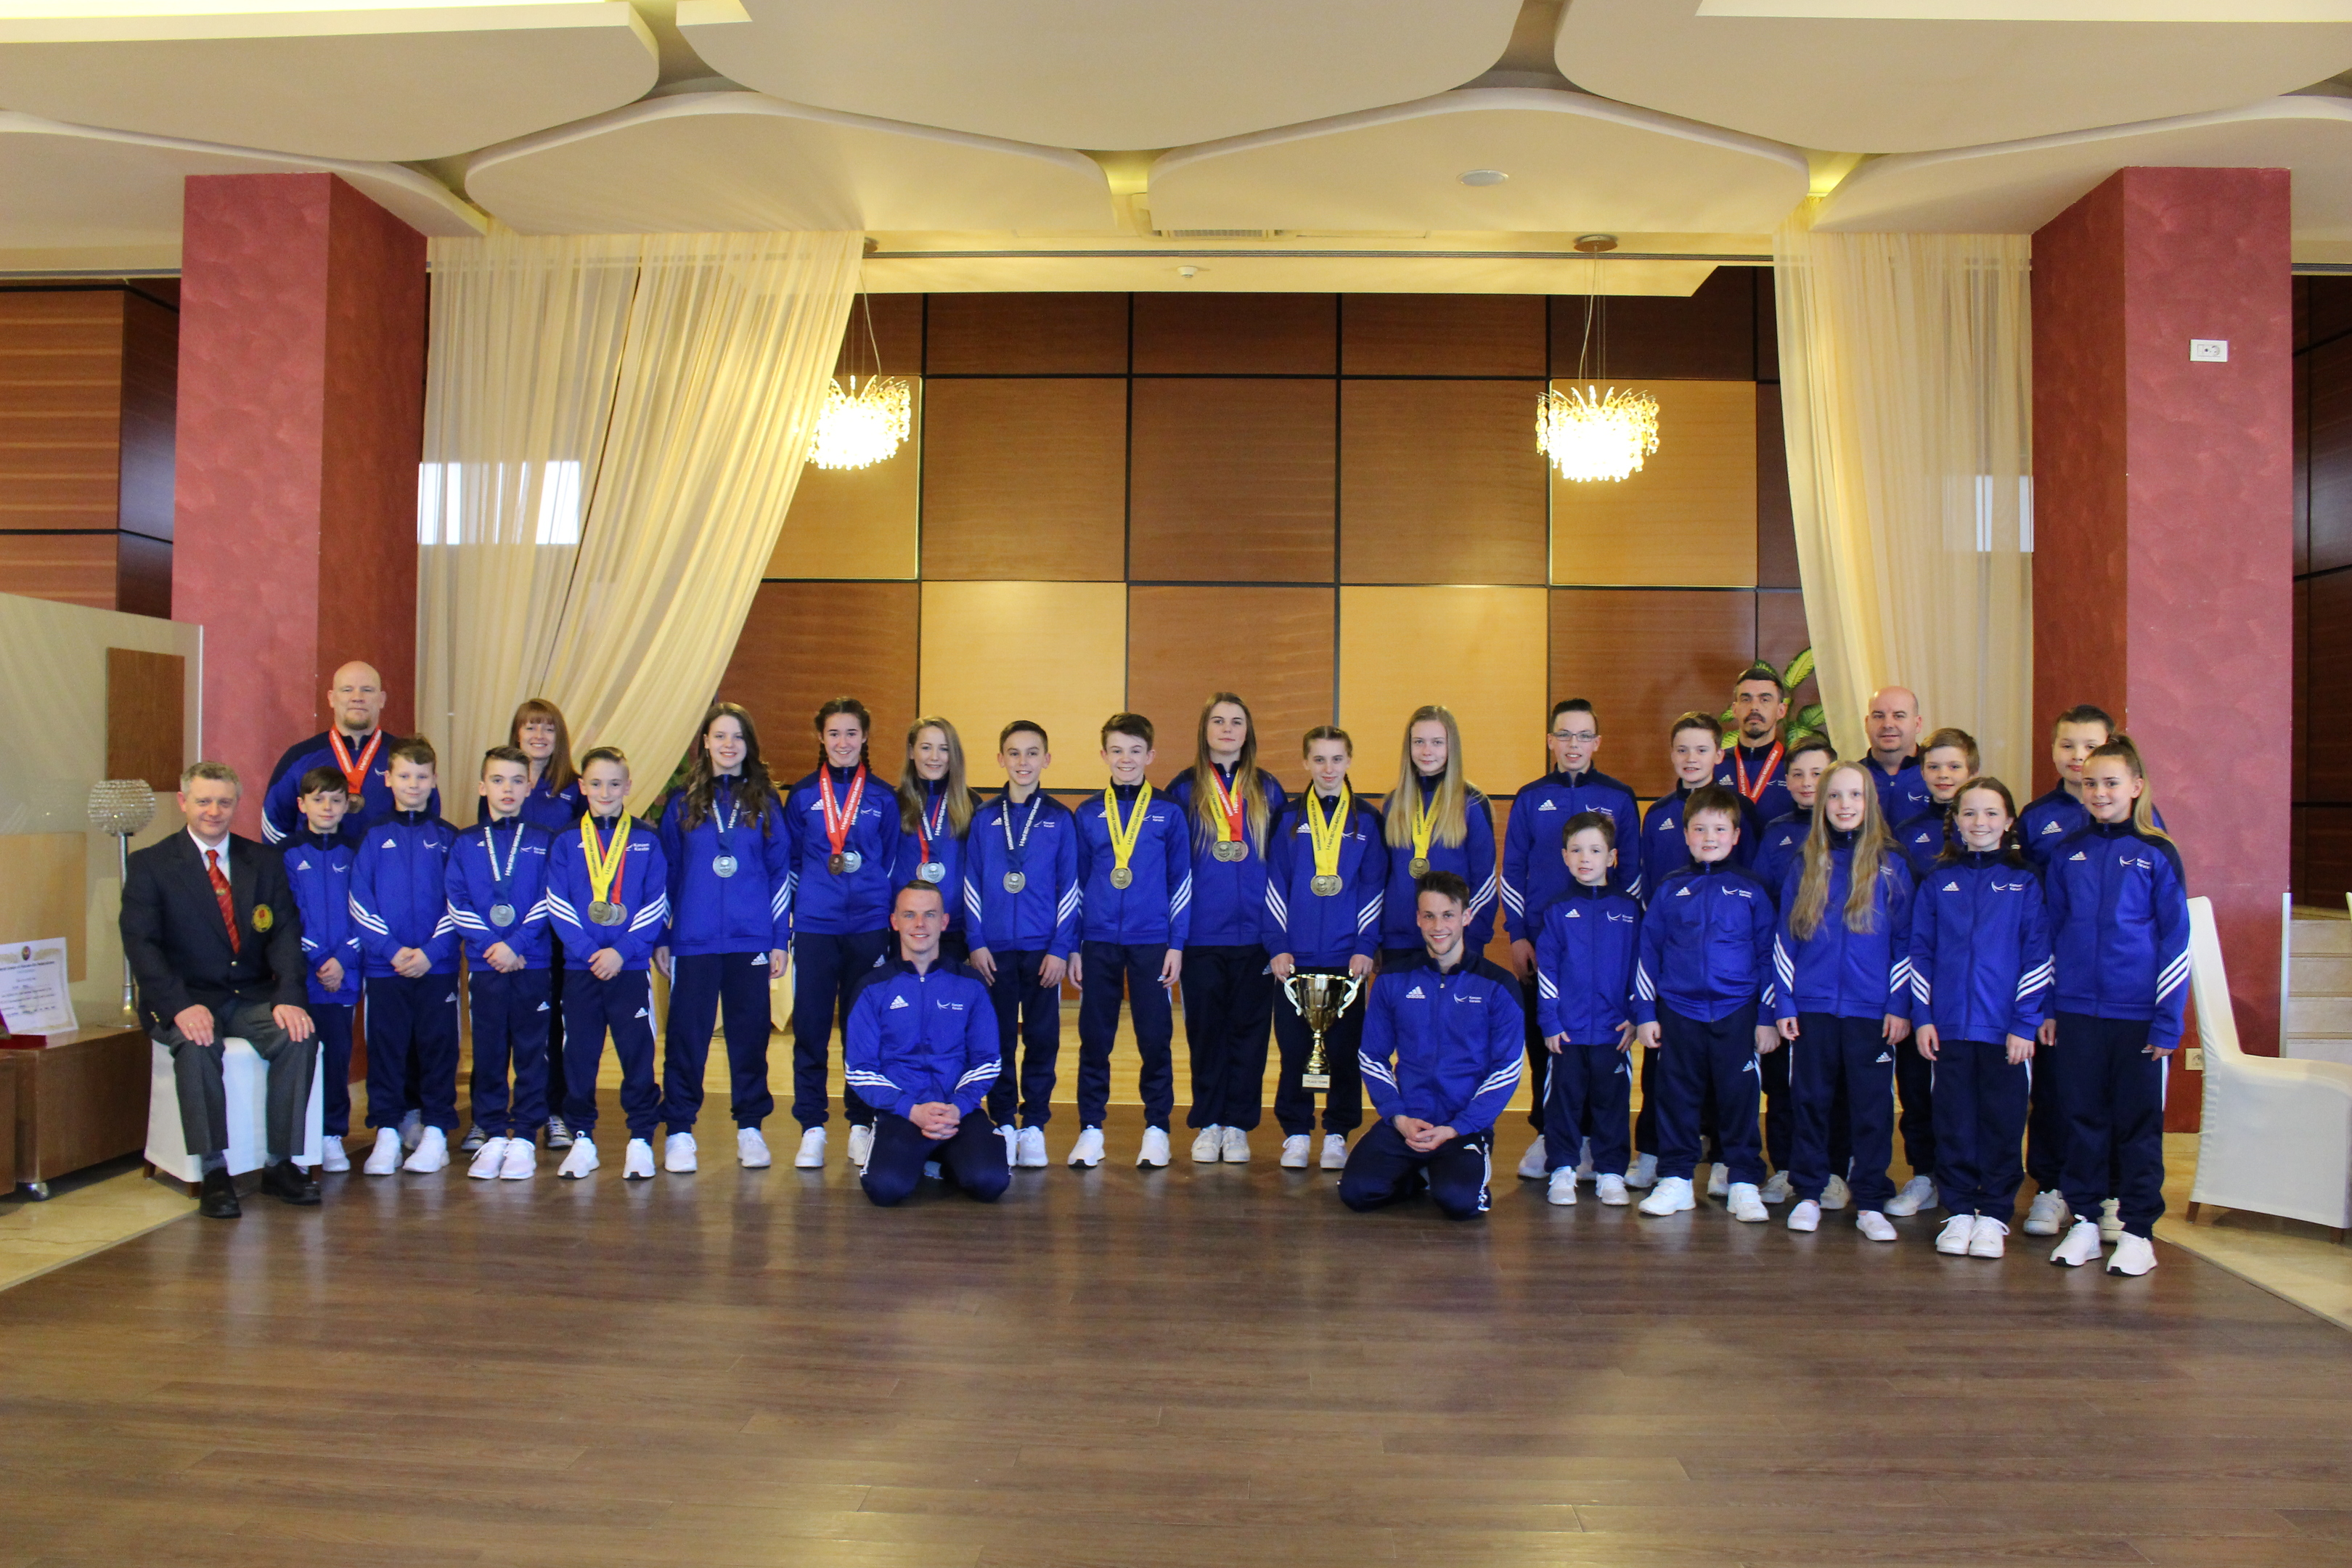 Kanzen Karate claimed a haul of medals at the event in Romania.